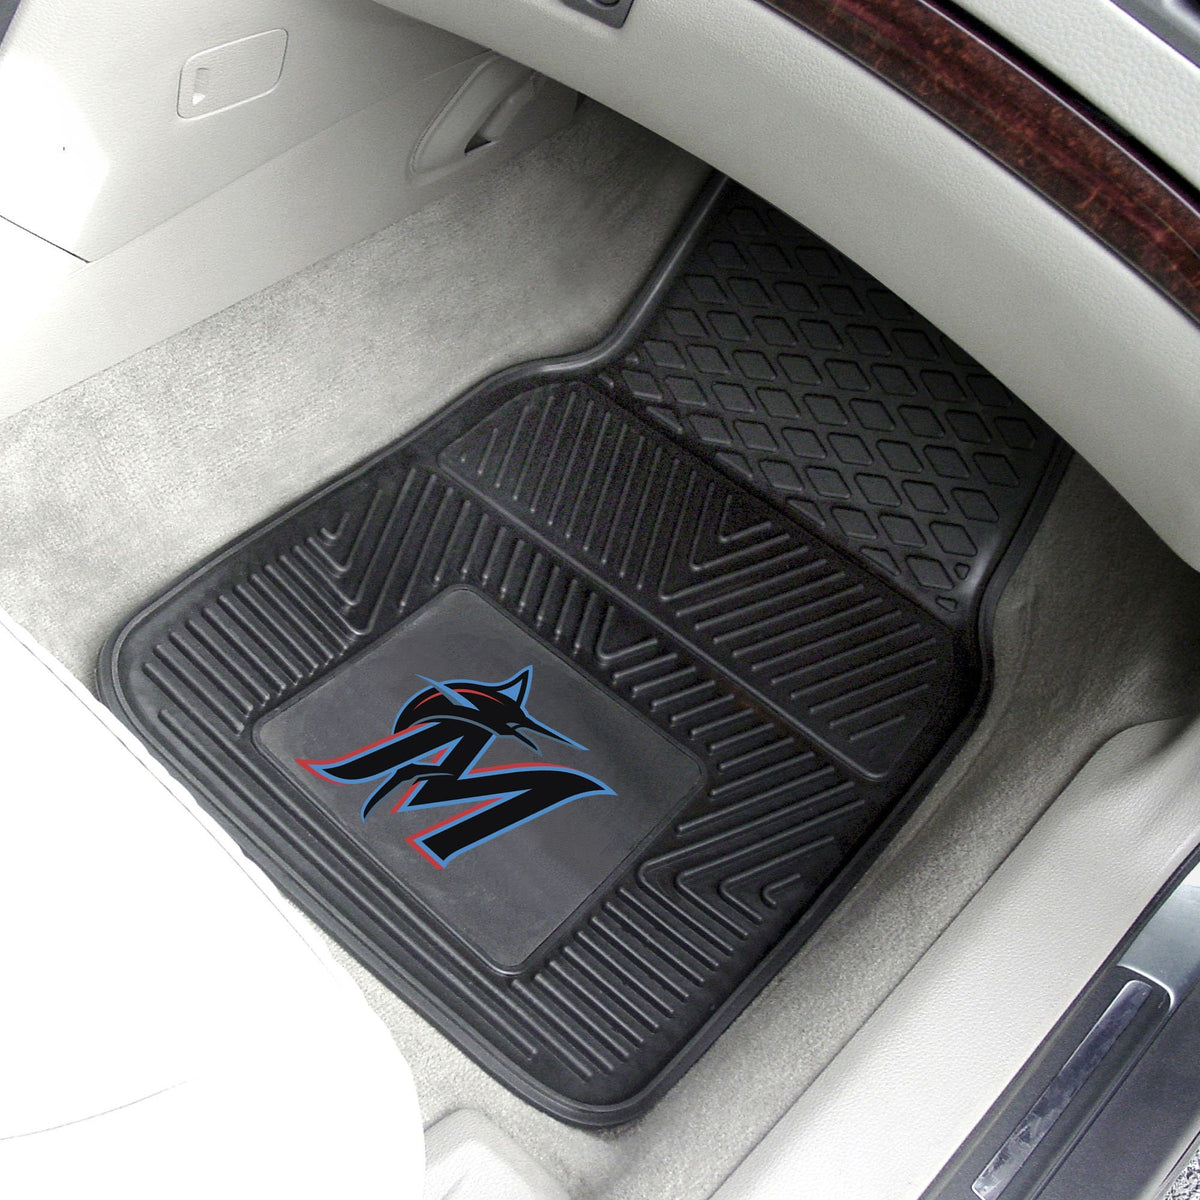 MLB - Vinyl Car Mat, 2-Piece Set MLB Mats, Front Car Mats, 2-pc Vinyl Car Mat Set, MLB, Auto Fan Mats Miami Marlins